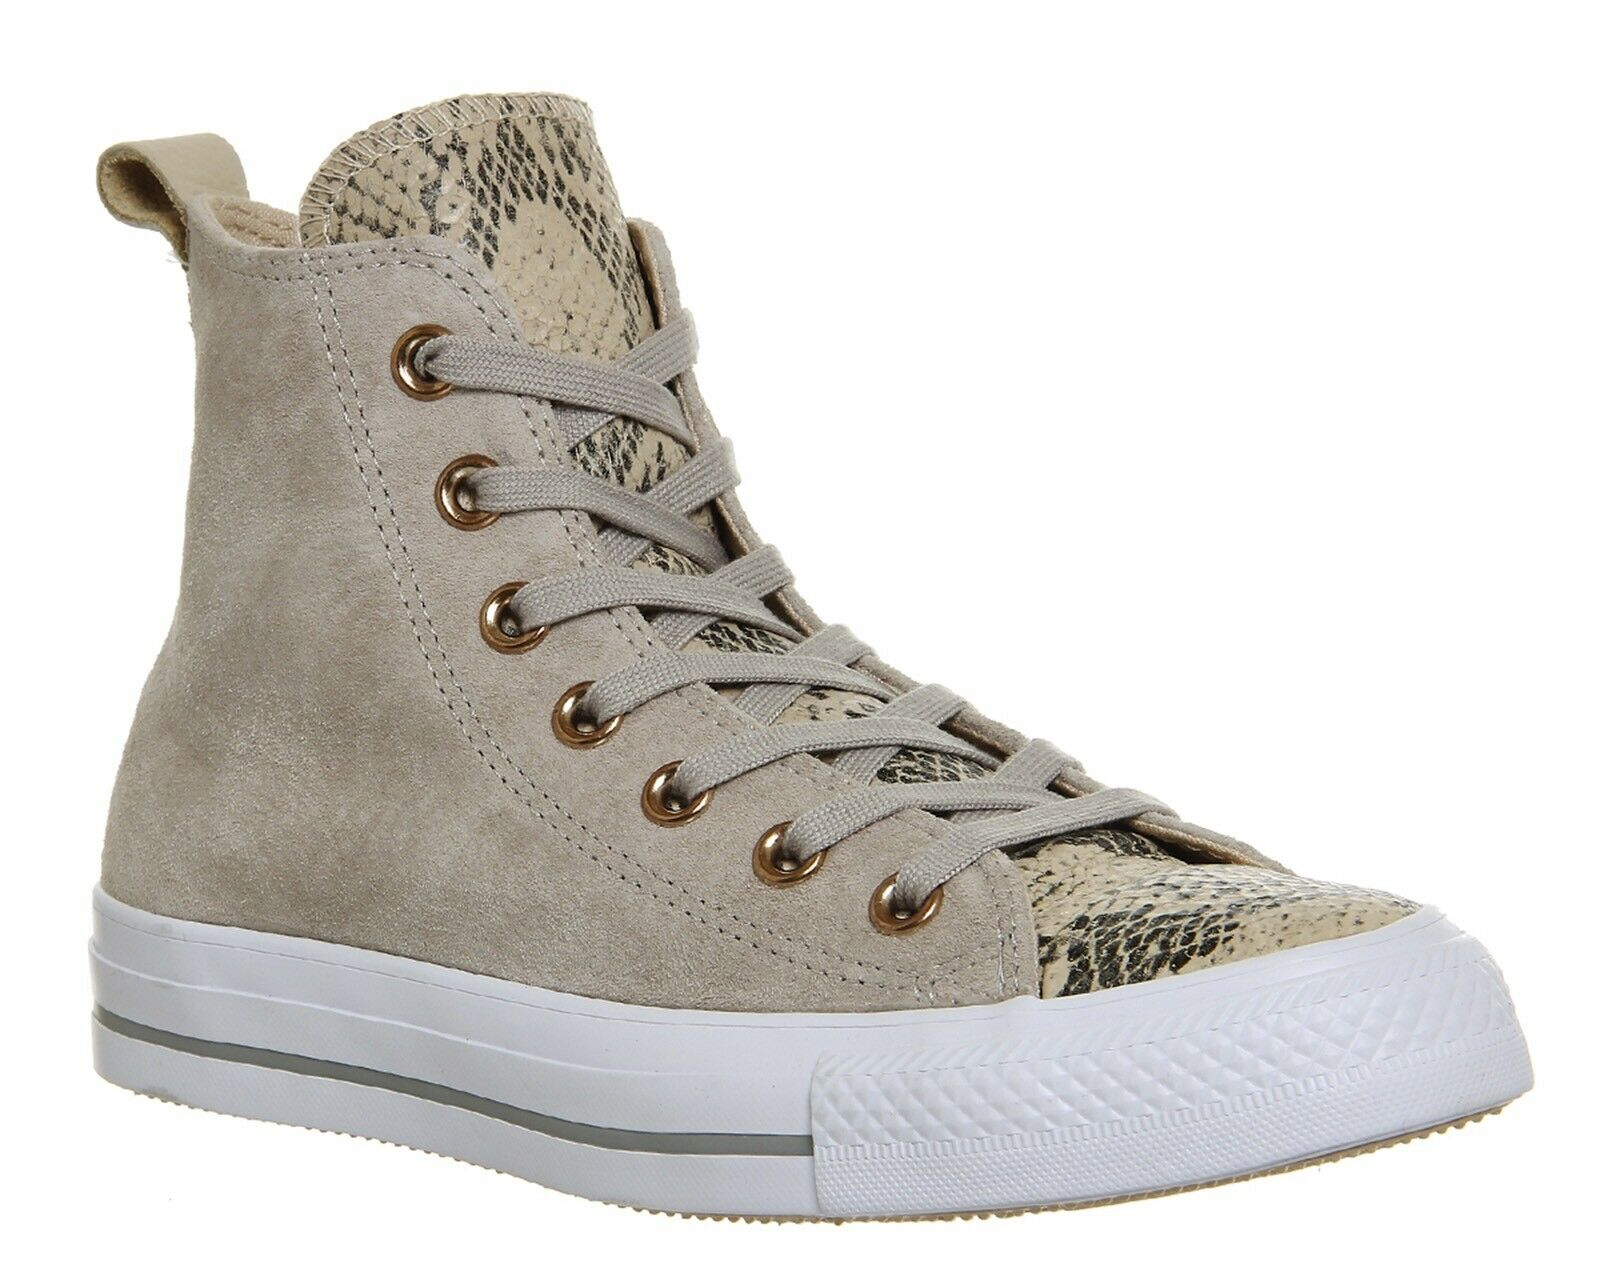 ✨NEW✨ Ivory Converse Lined Loop Suede Ivory ✨NEW✨ Snake High Top Turnschuhe Sz 8 0783e2